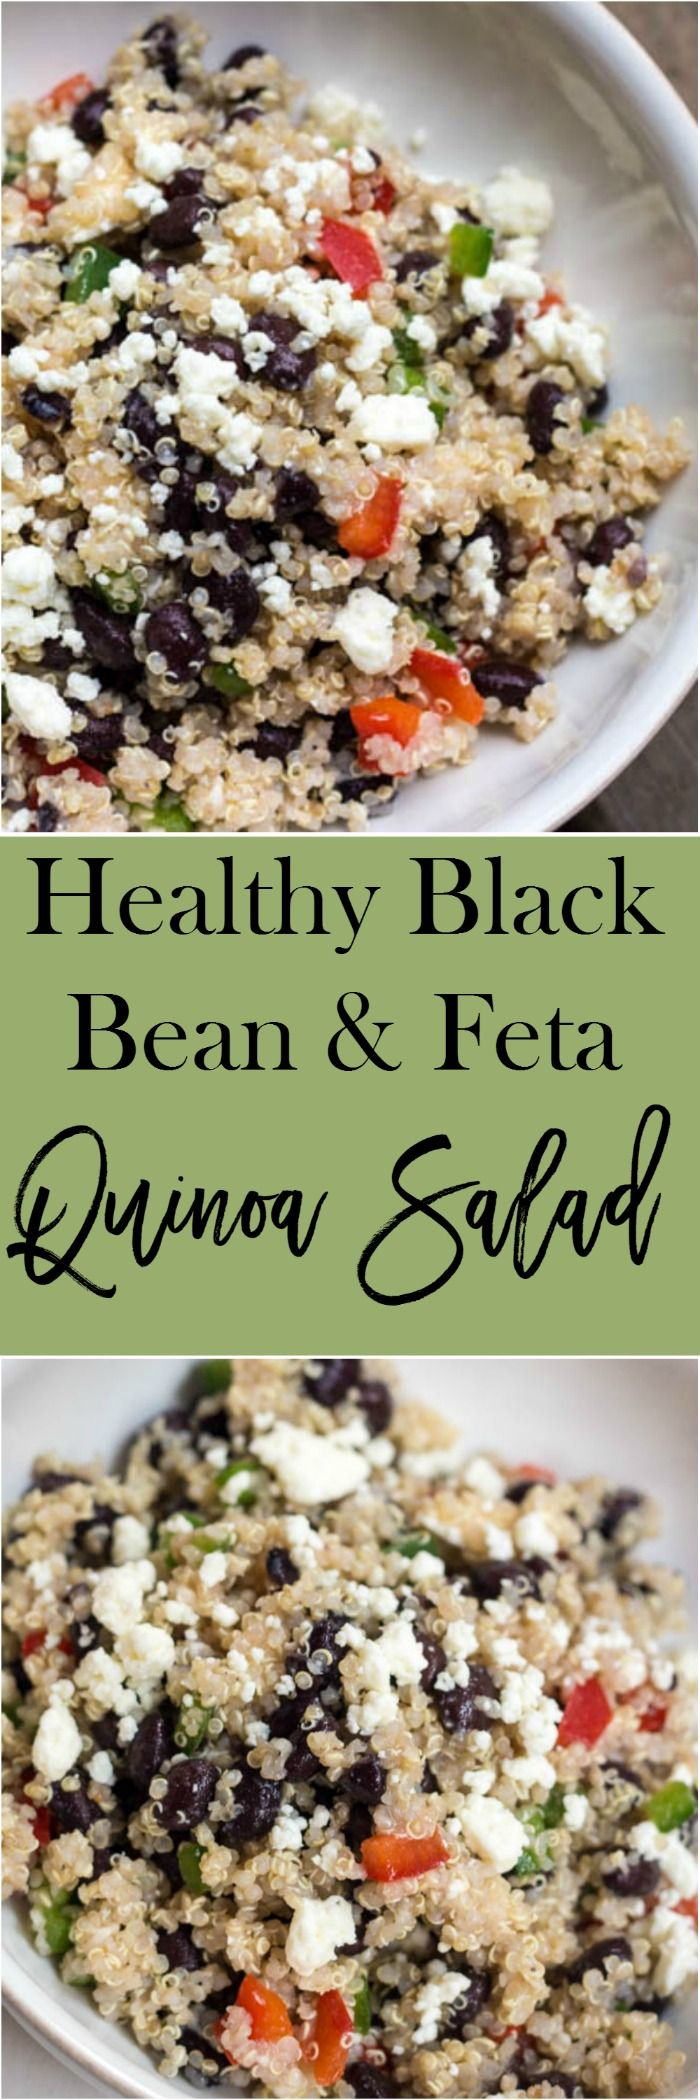 Healthy Black Bean and Feta Quinoa Salad - an easy side dish recipe that you can throw together in about 5 minutes.